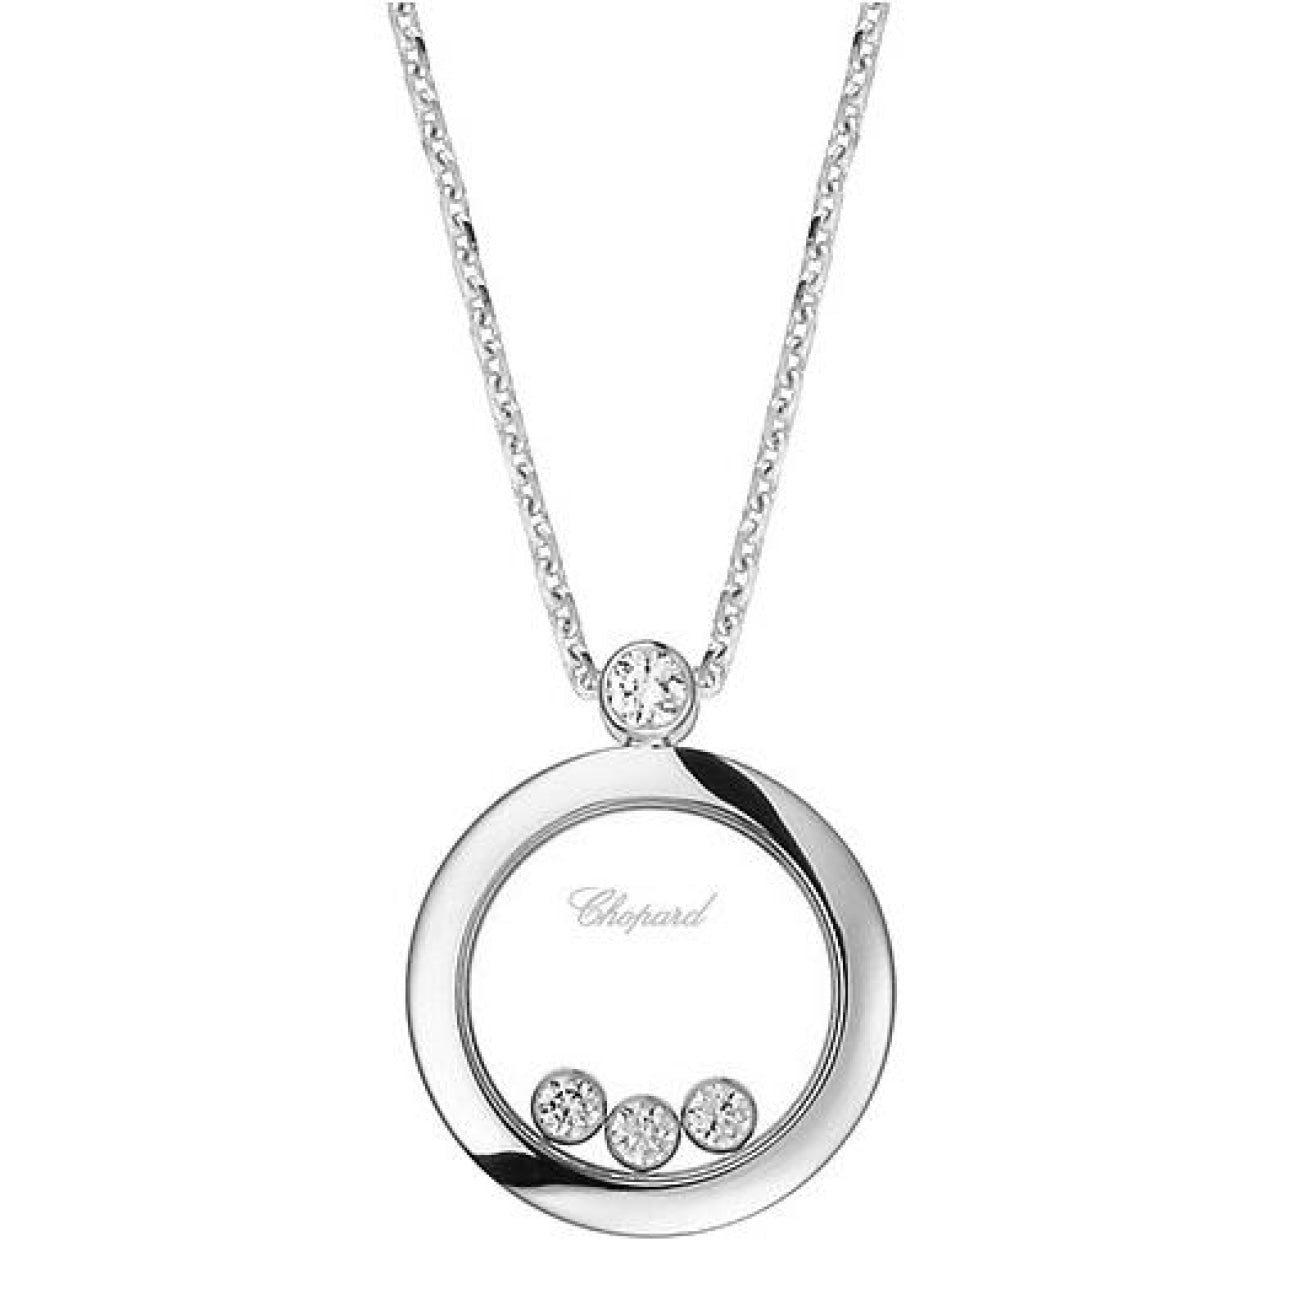 Chopard Jewelry - Chopard Round Pendant With Three Floating Diamonds | Manfredi Jewels